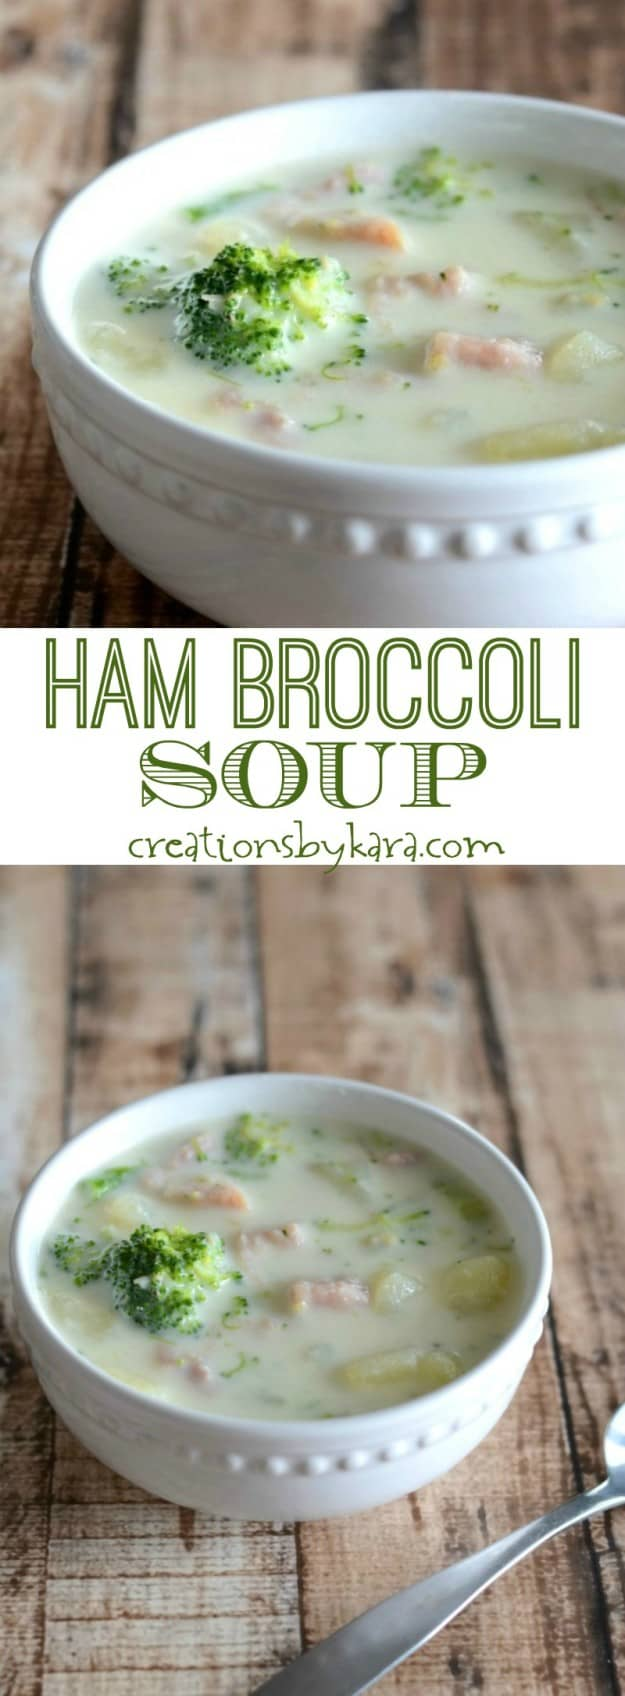 Hearty and delicious Ham Broccoli Soup- a perfect soup recipe to warm you up!